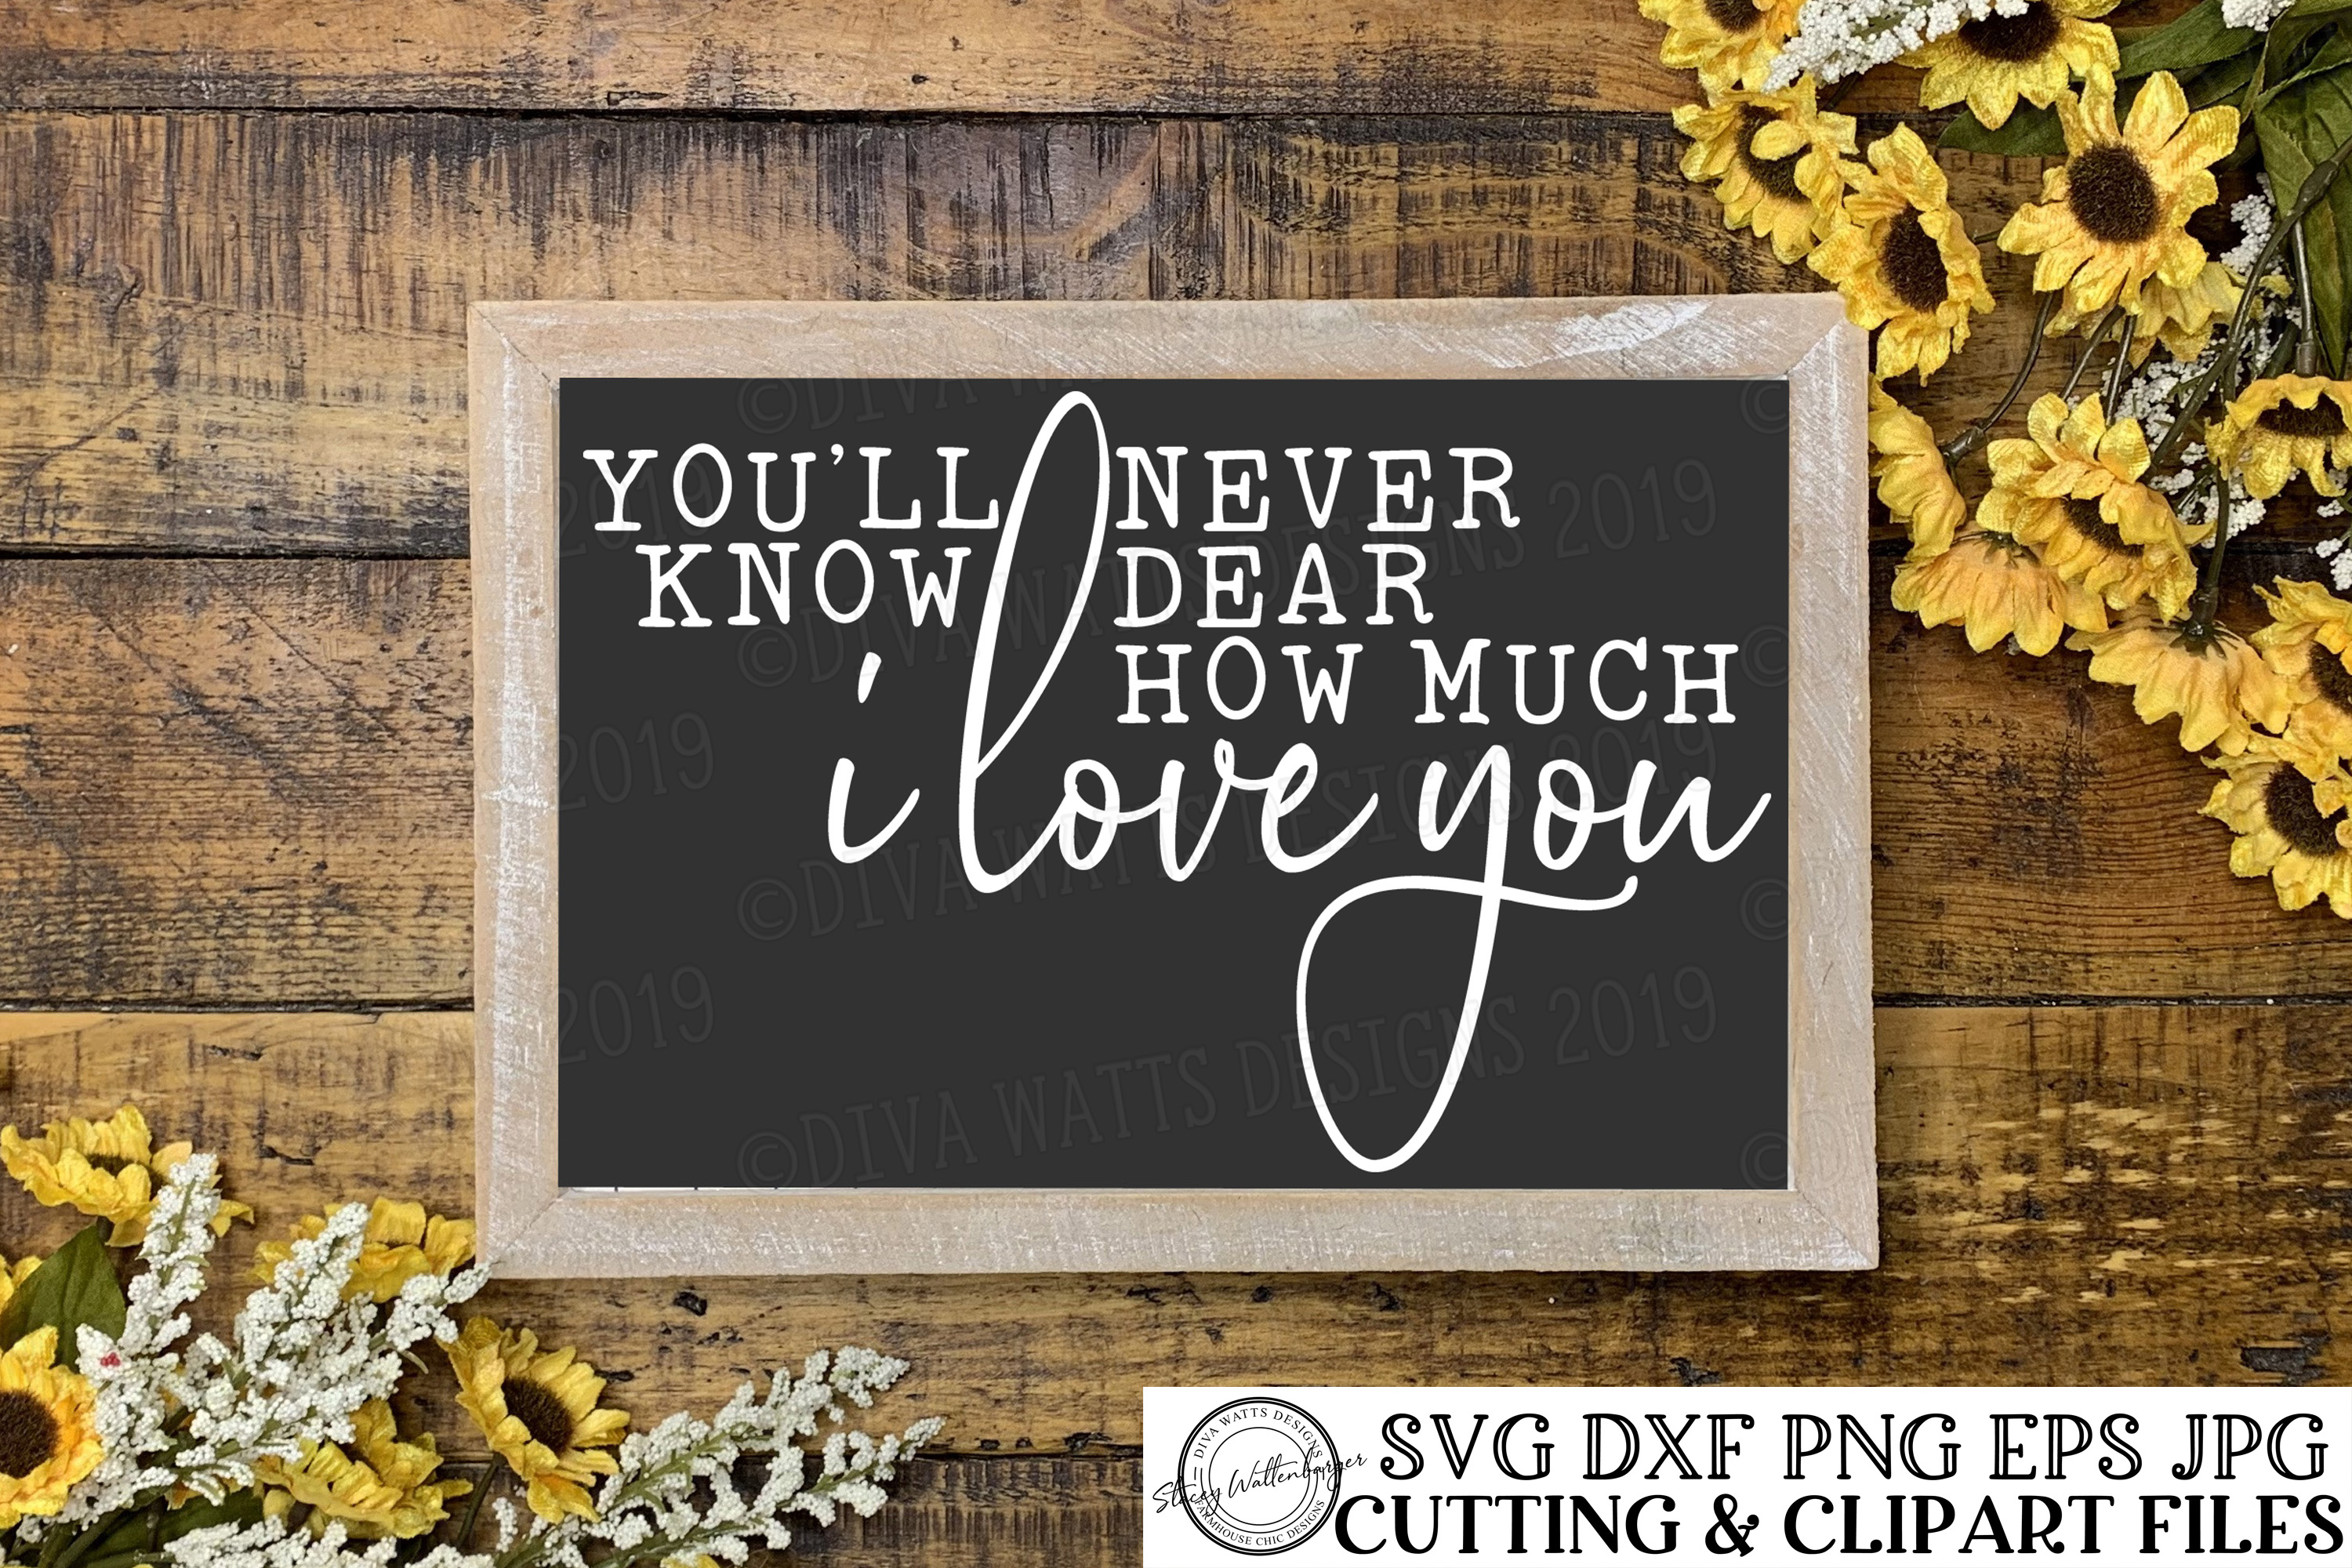 You'll Never Know Dear How Much I Love You - Cutting File example image 1